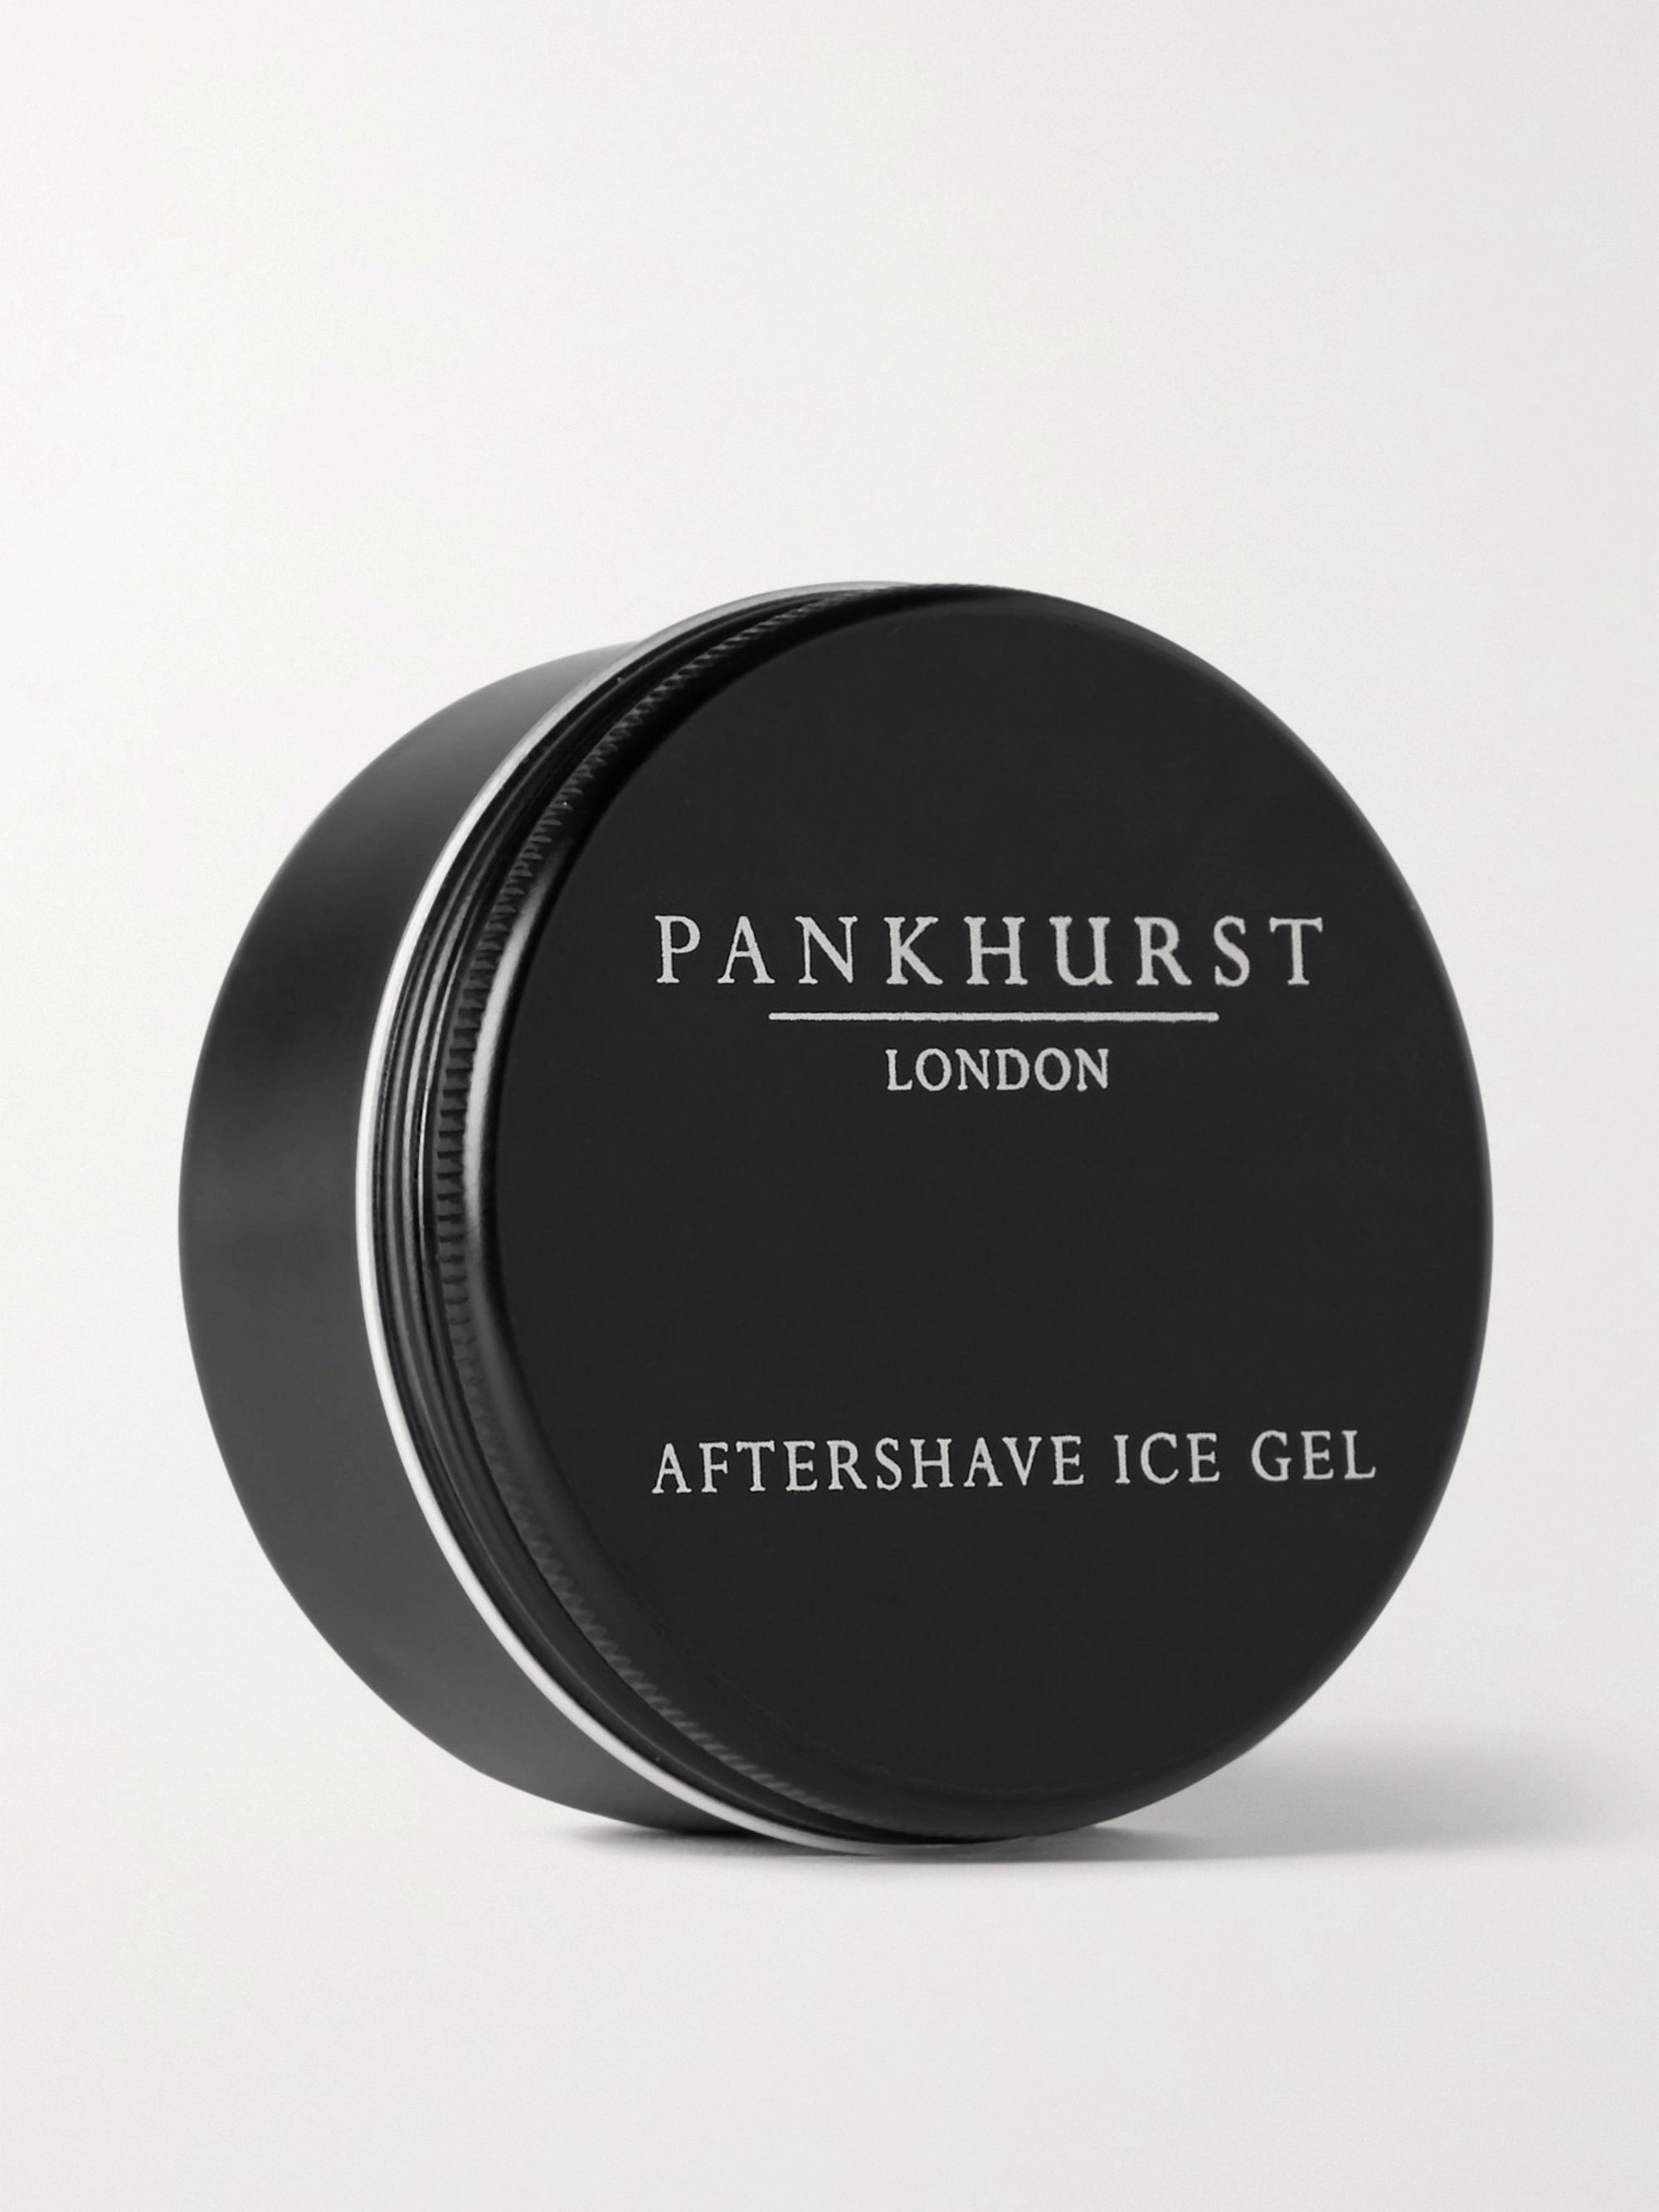 Pankhurst London Aftershave Ice Gel, 75ml